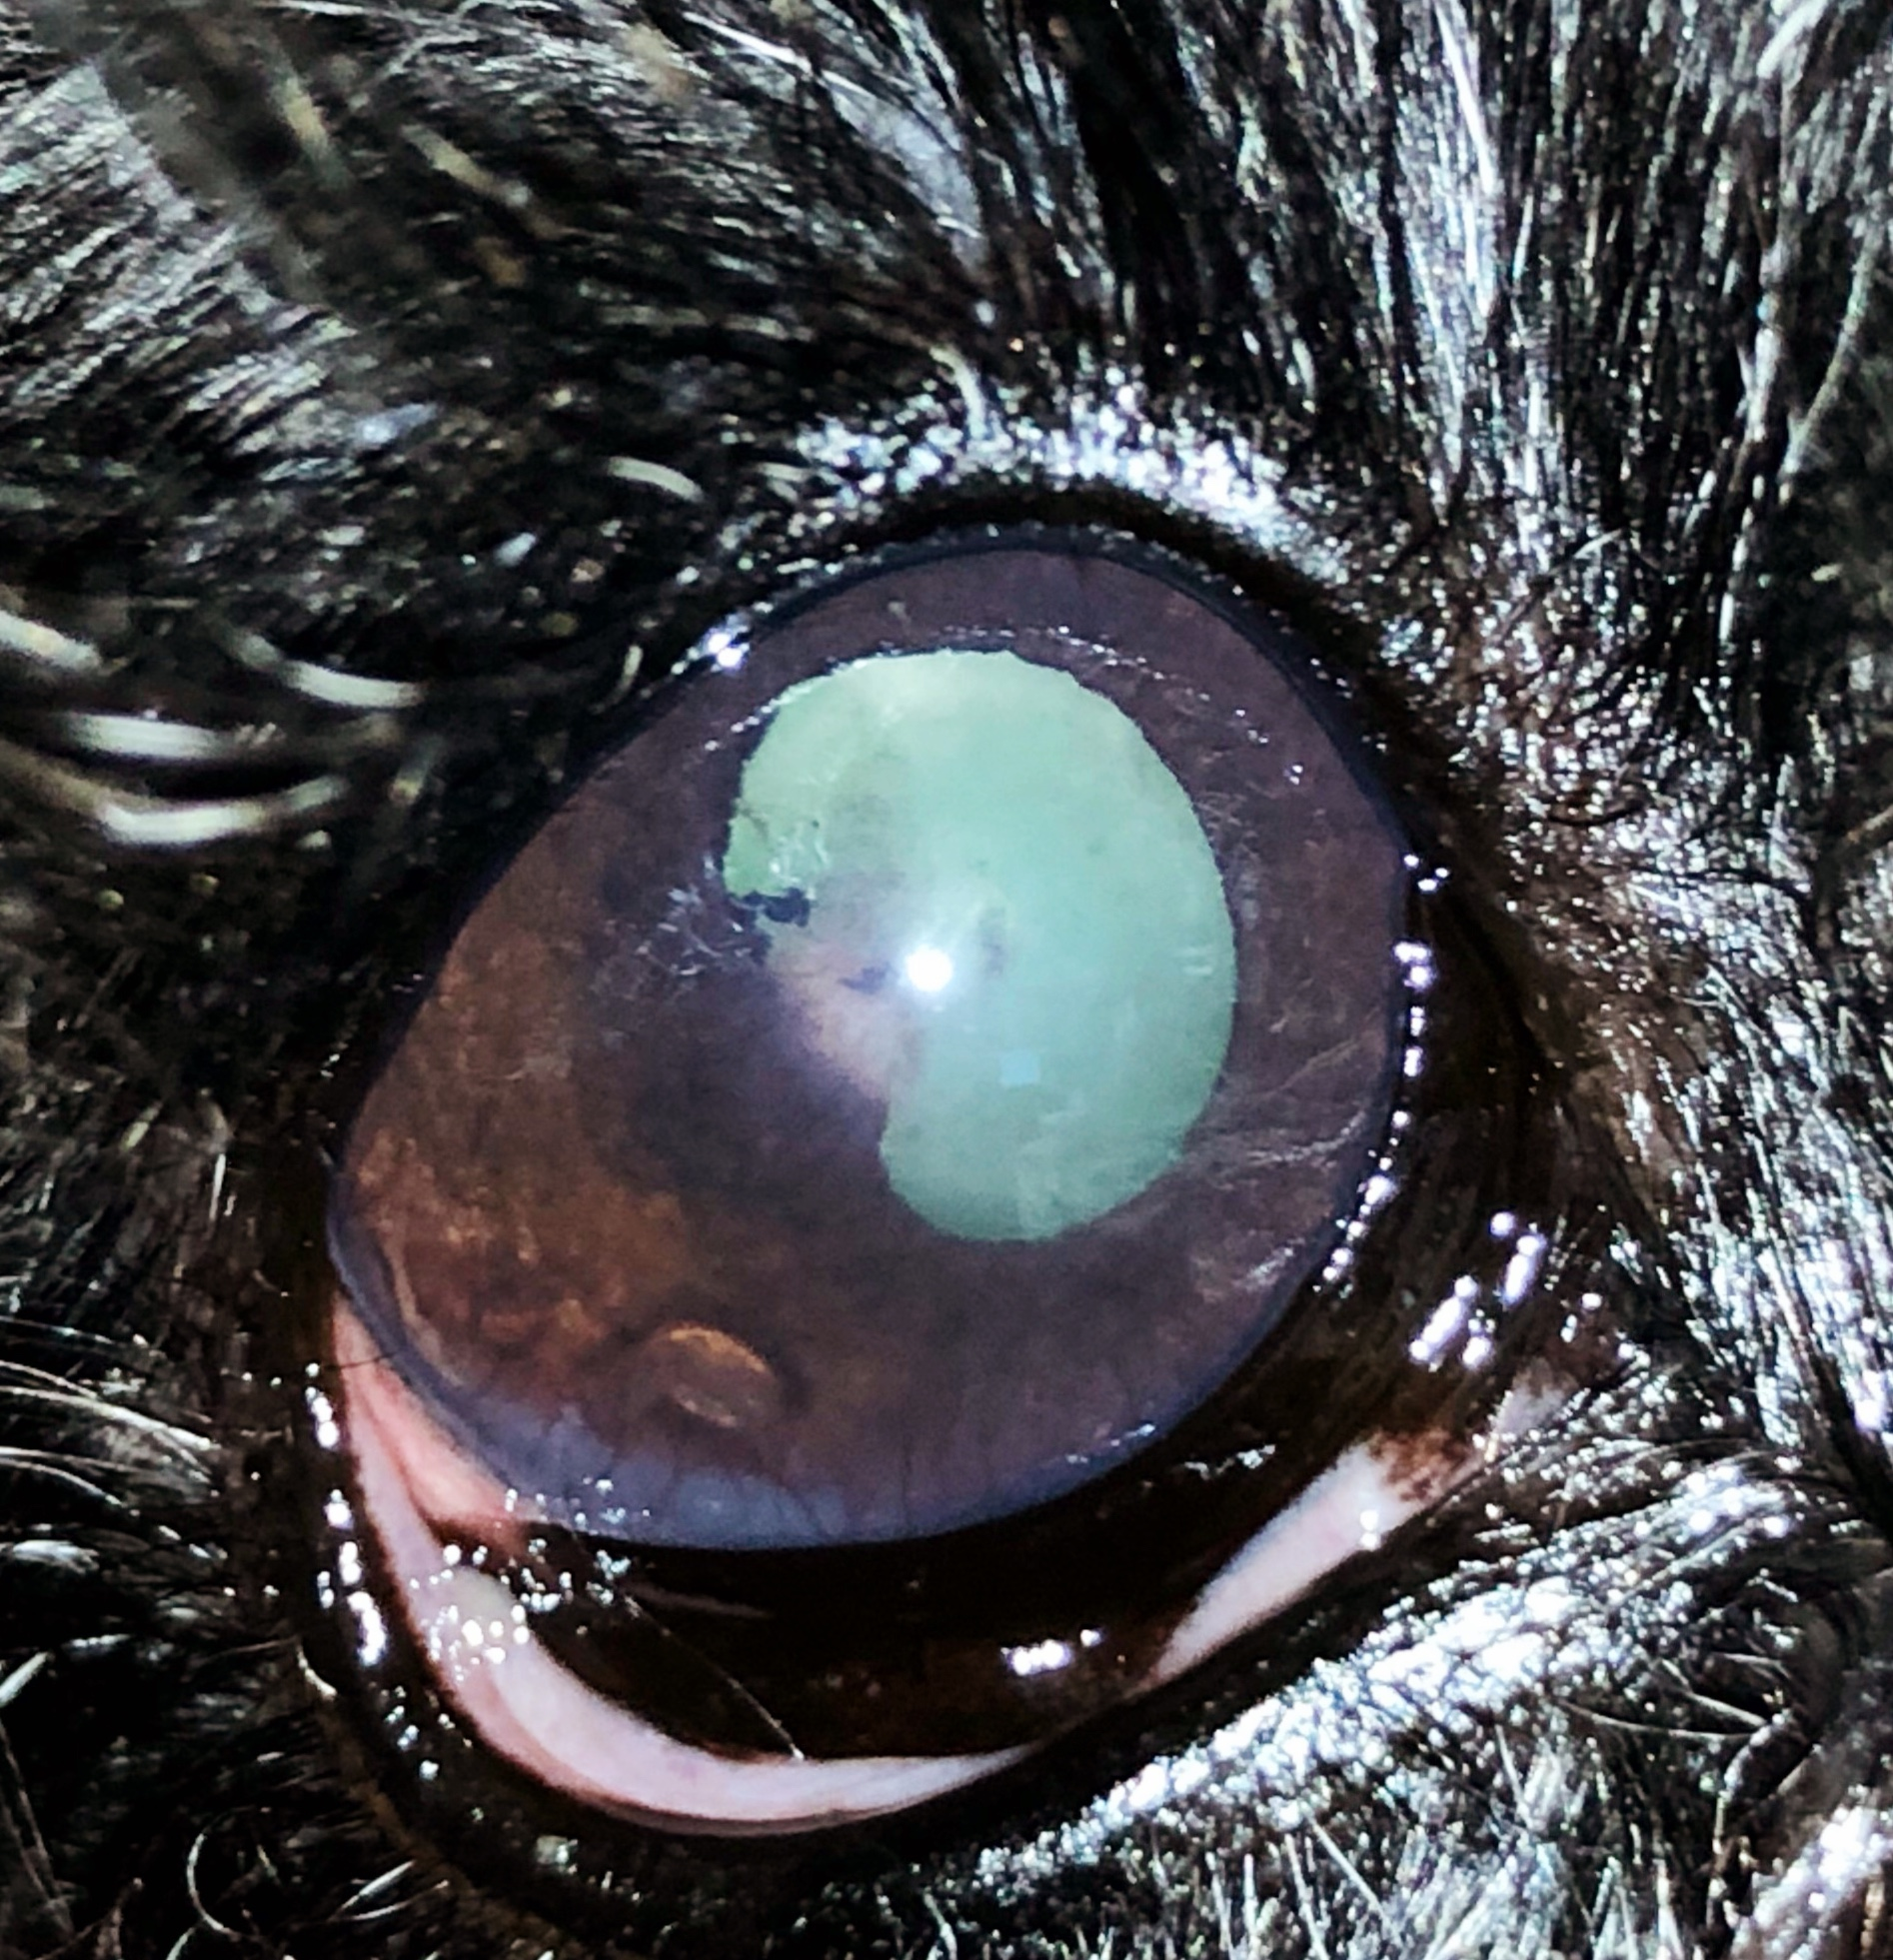 Nov. 2017 - recheck OD - no change in cataract Jan. 2018 - no change in cataract. KP's in anterior chamber, no flare. Blood work normal. responded nicely to topical Pred.